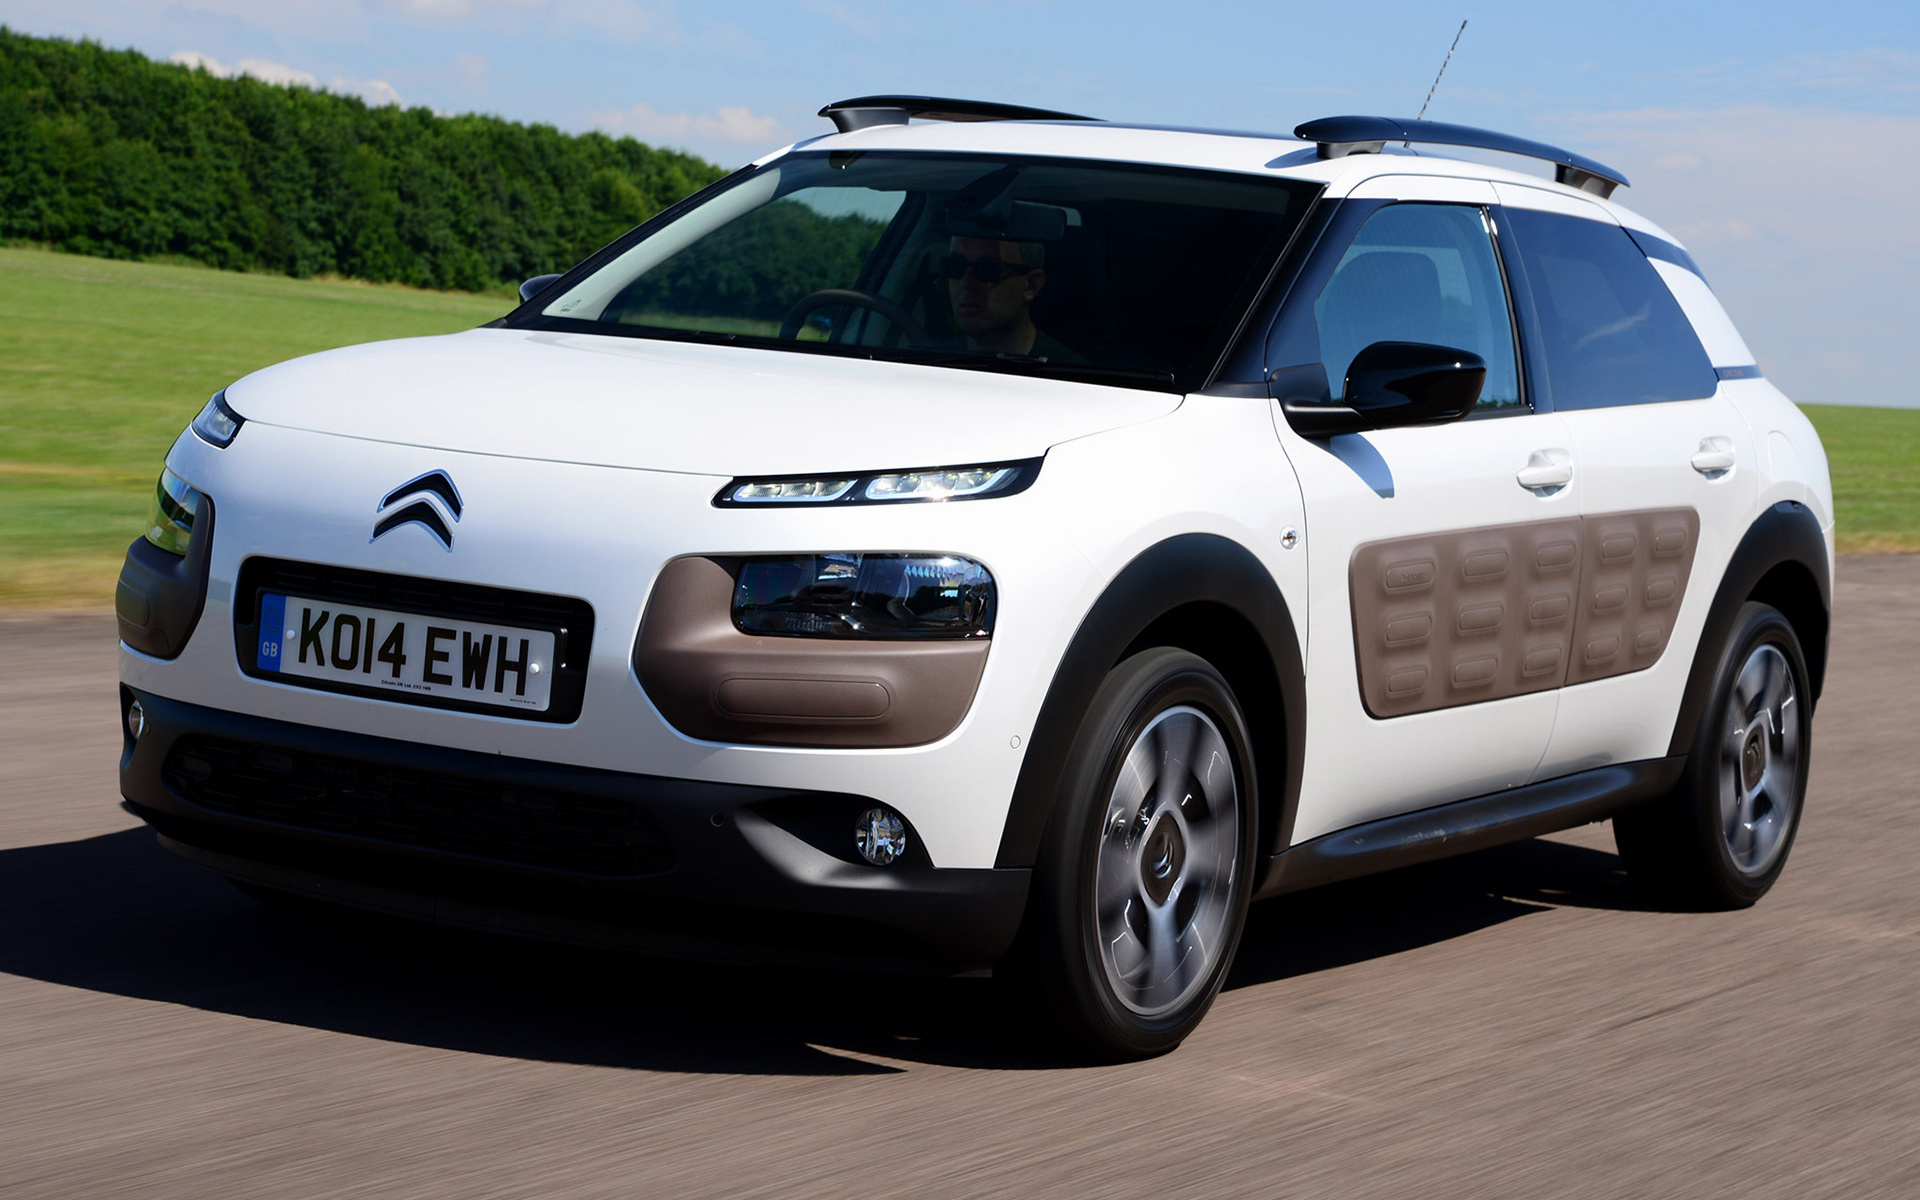 Genesis Car Wallpaper 2014 Citroen C4 Cactus Uk Wallpapers And Hd Images